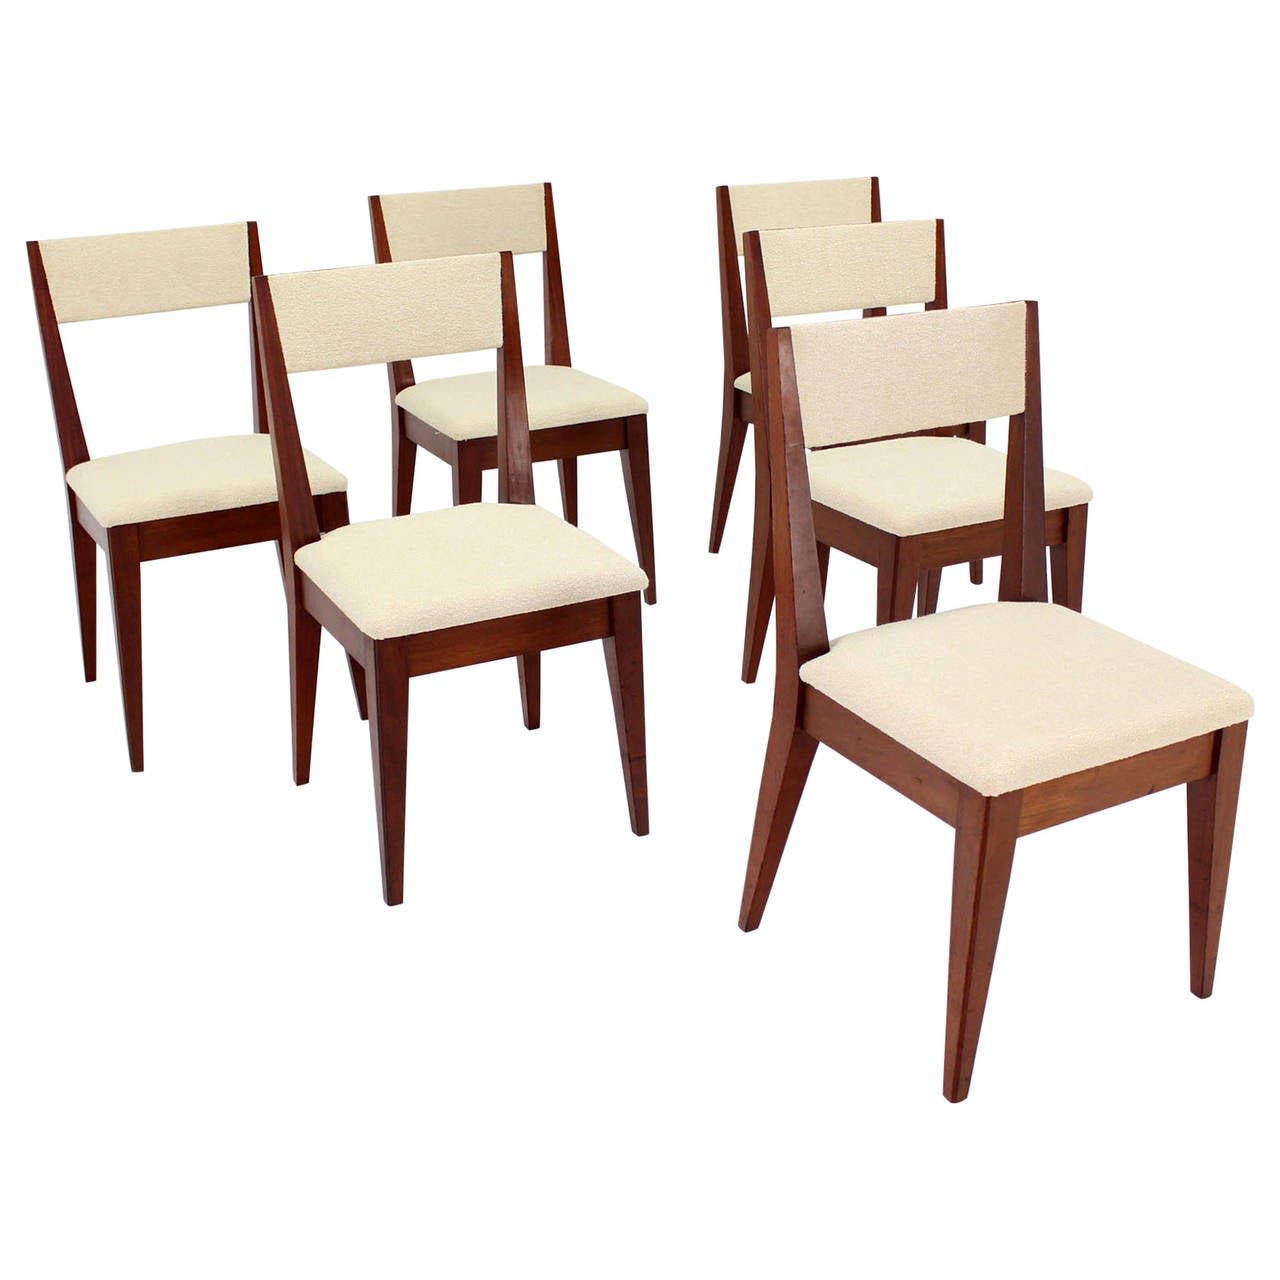 Mid Century Modern Dining: Set Of Six Mid-Century Modern Dining Chairs At 1stdibs